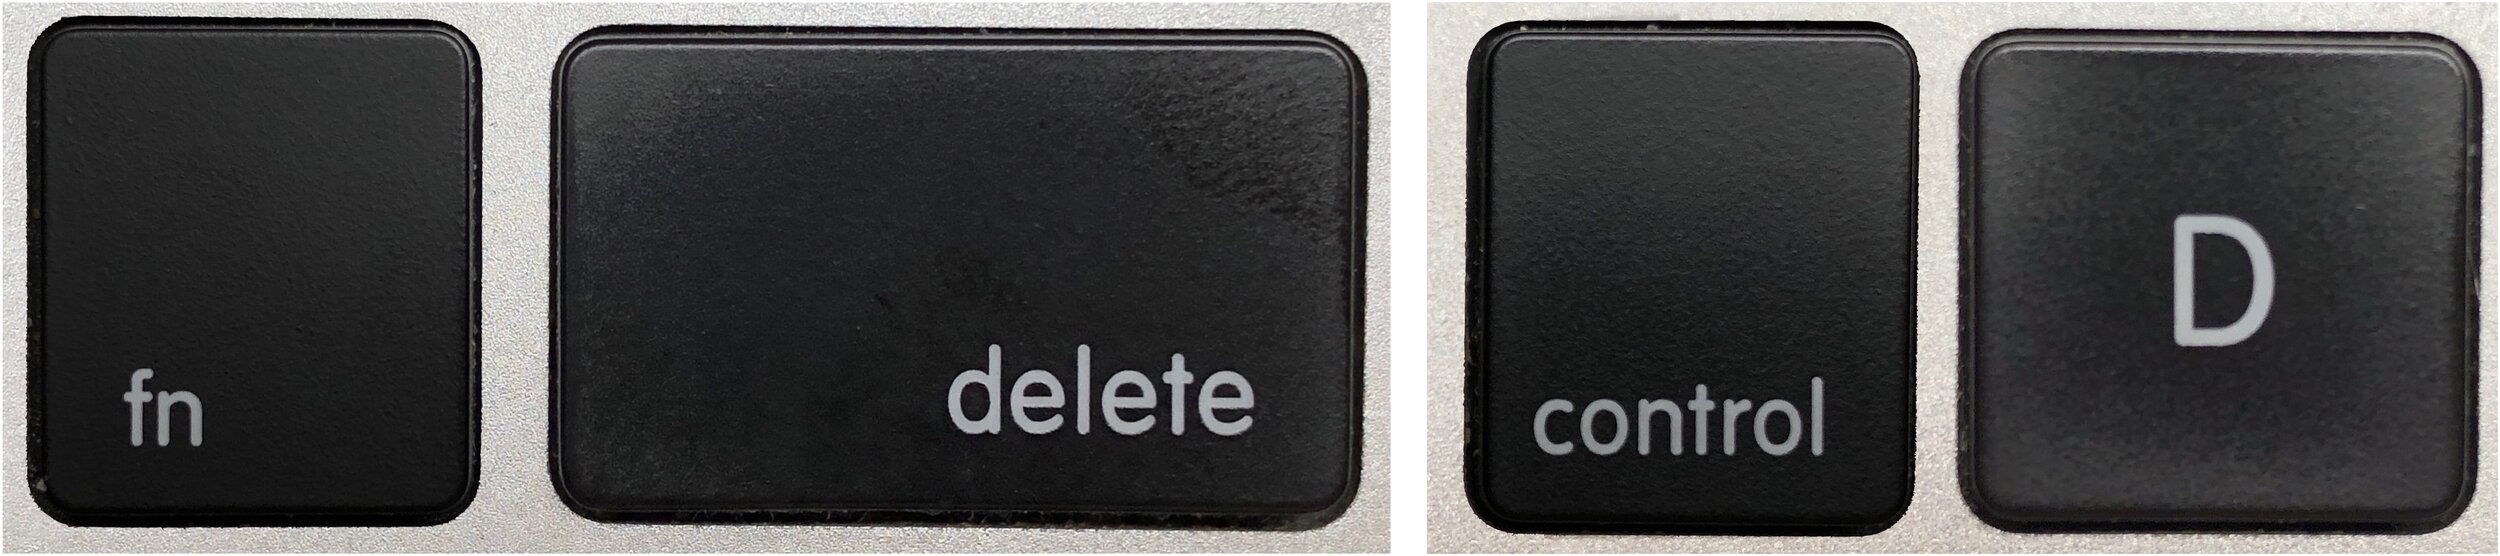 Forward-Delete-alternatives.jpg